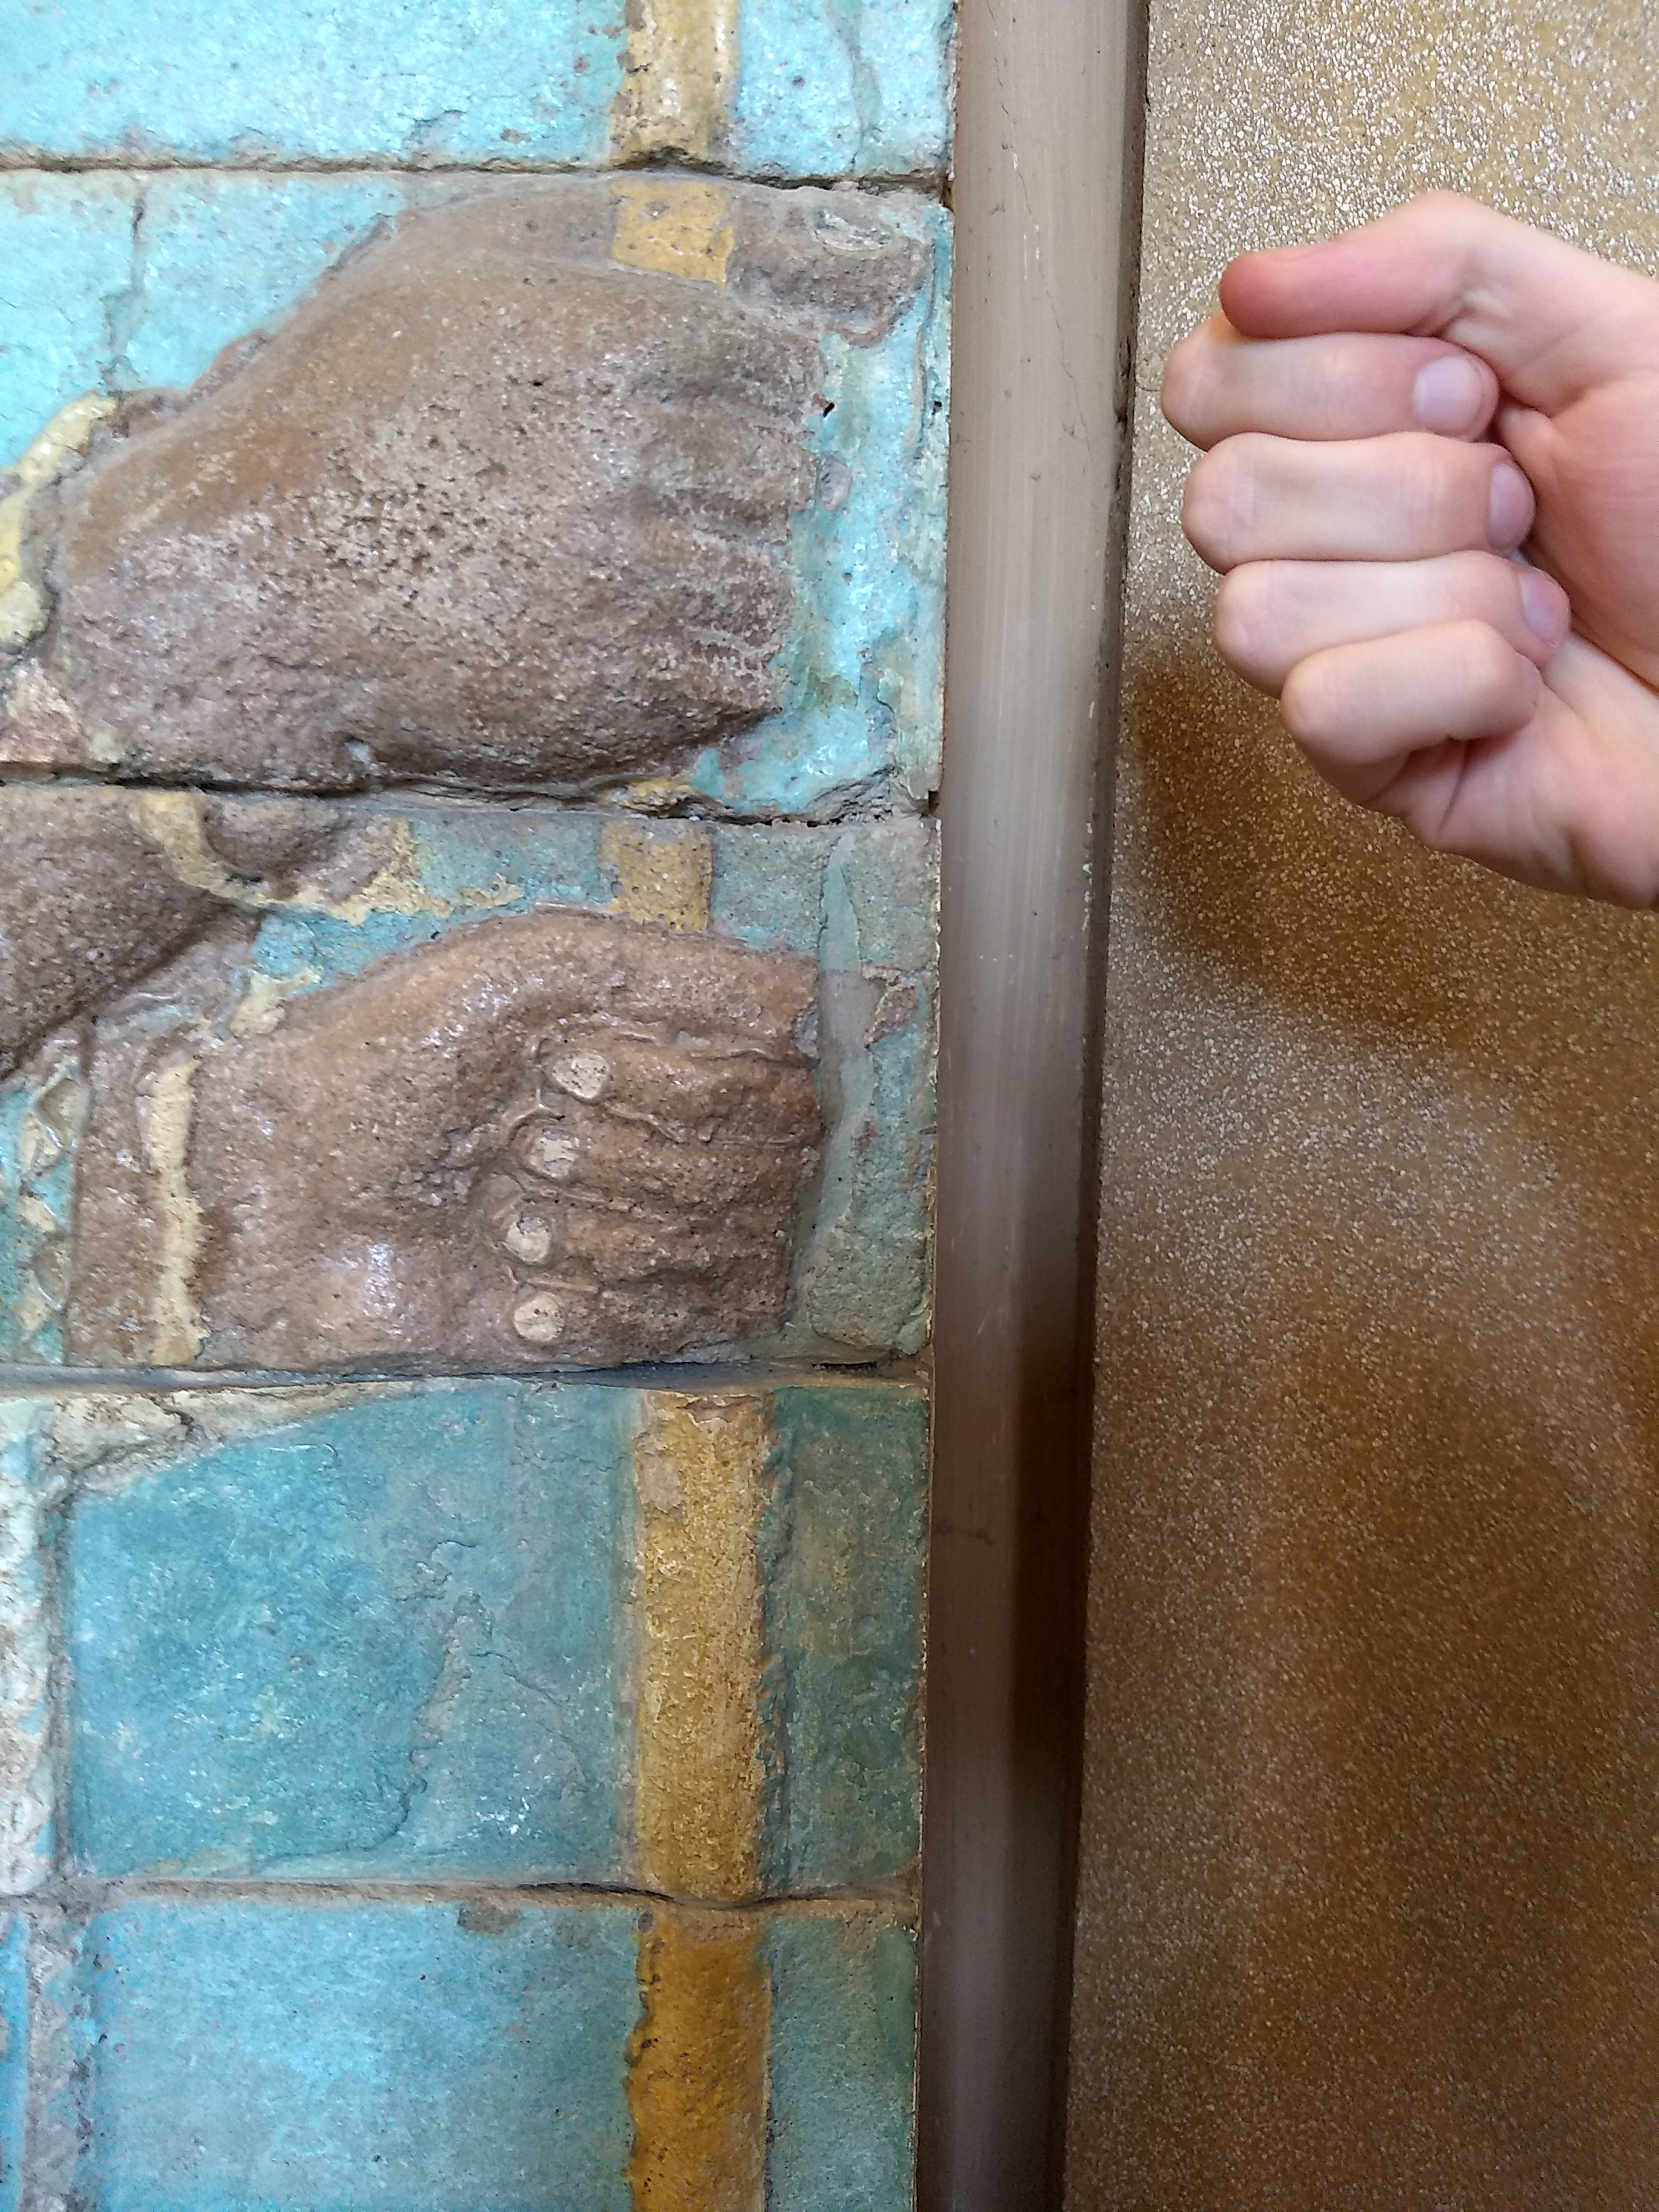 A glazed brick relief of a man holding a spear in both hands next to a clenched fist.  The fist gripping the spear and the live fist are aboout the same size.